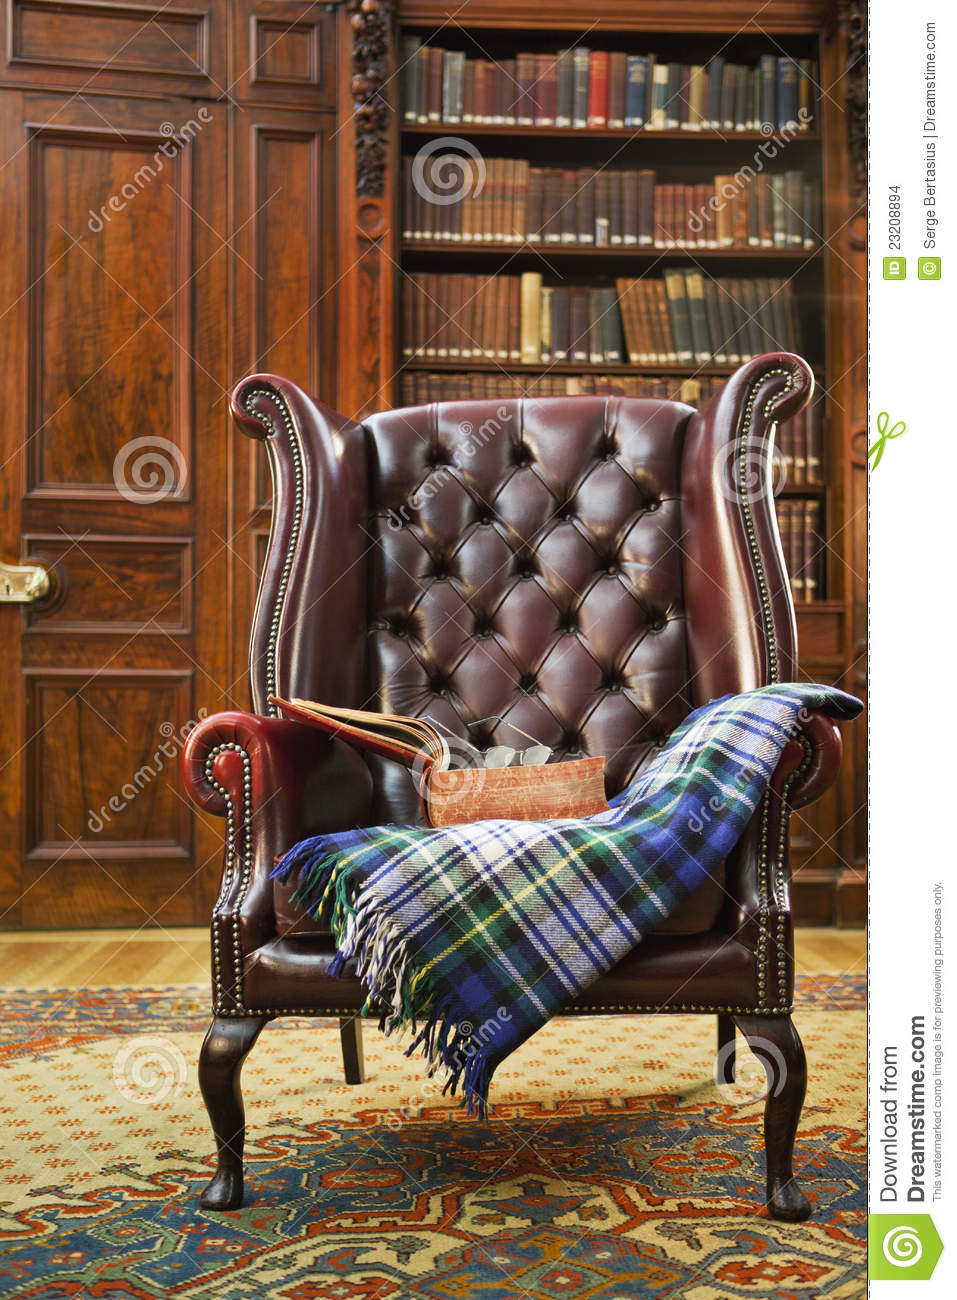 tartan chesterfield sofa faux leather bed uk traditional armchair stock photo image of heritage with blanket in classical library room